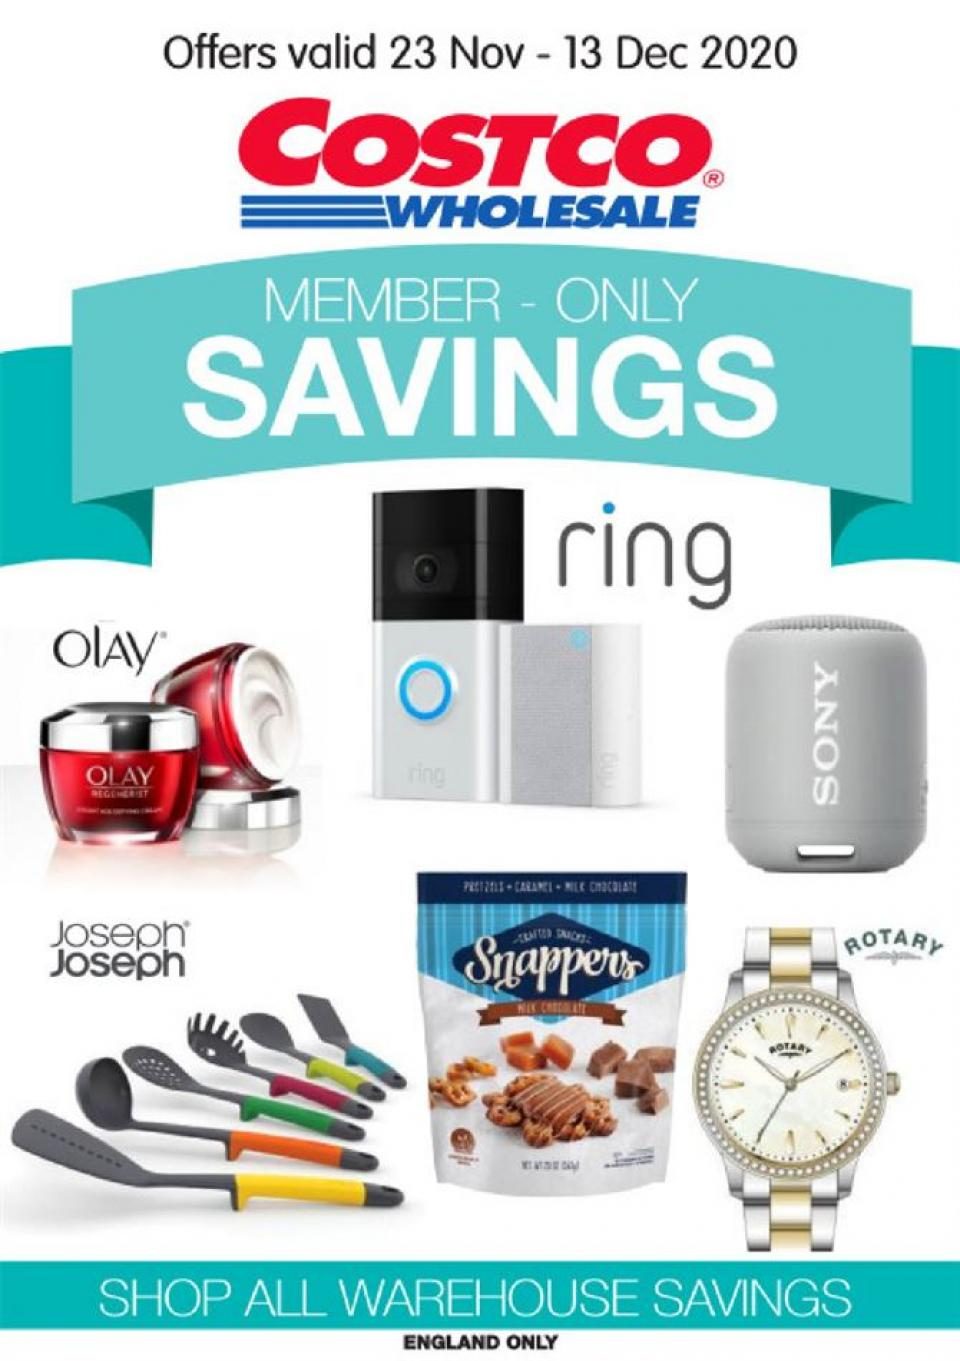 costco offers member only savings 23 november 2020